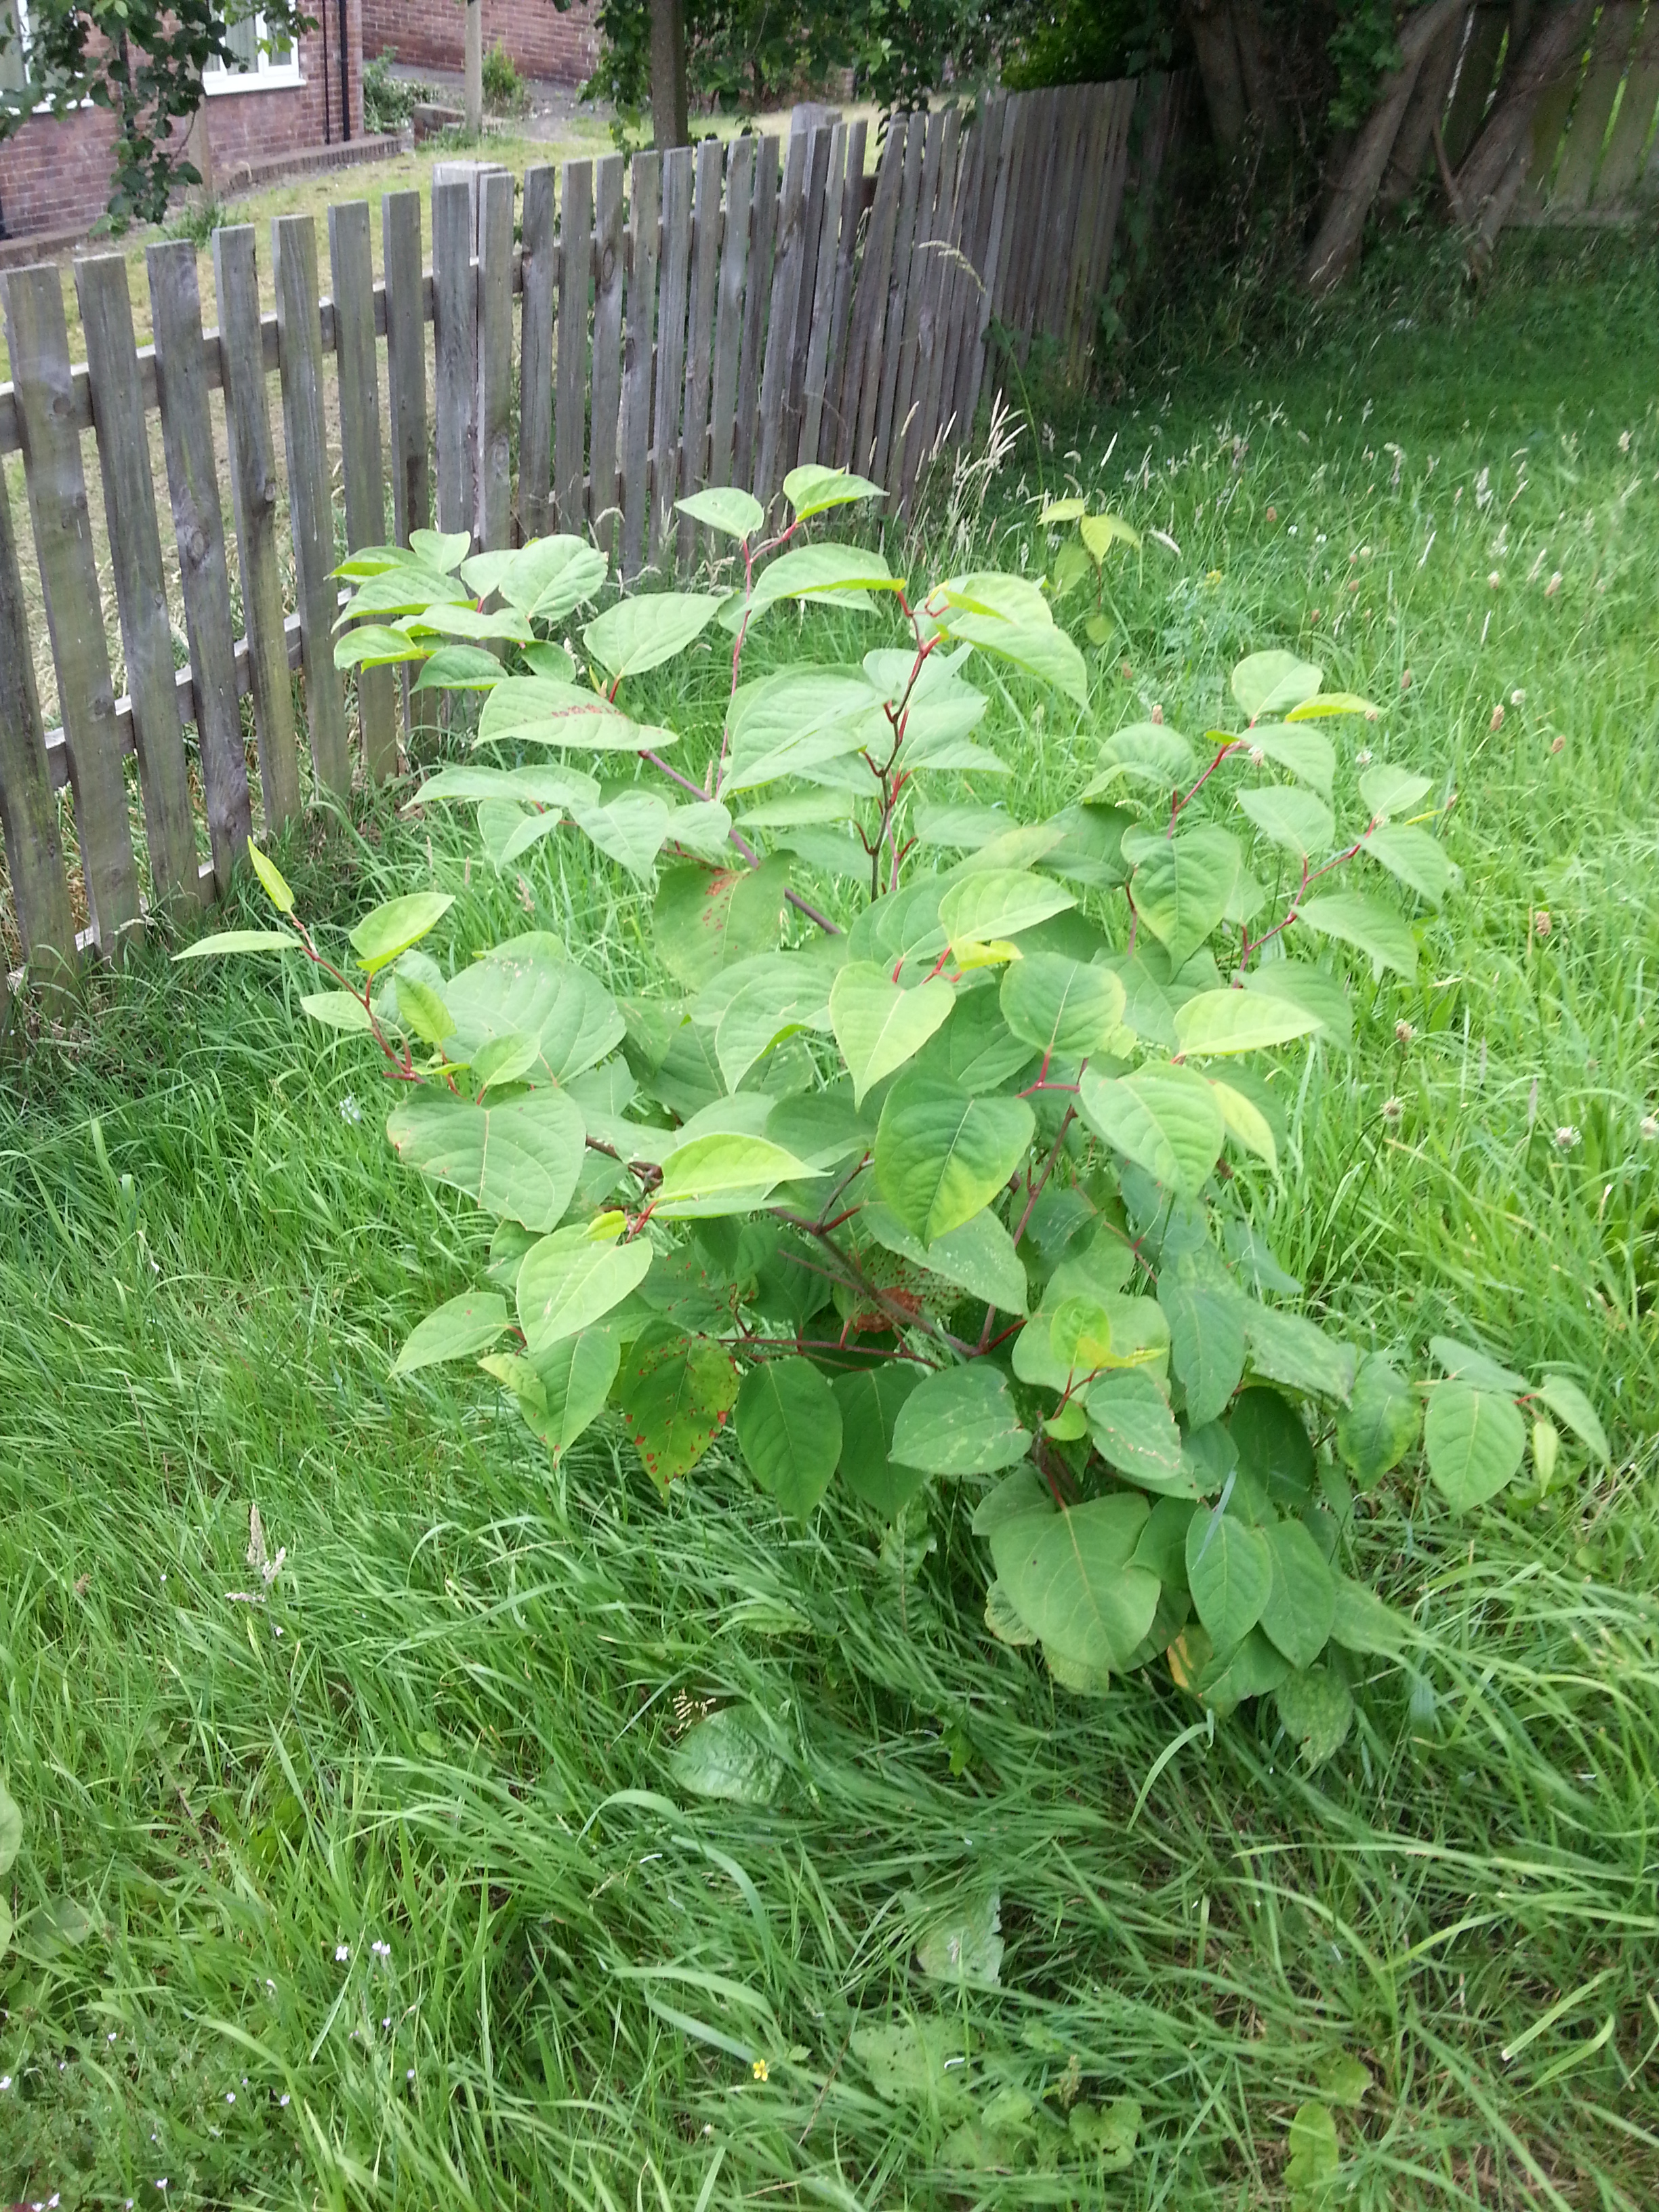 Japanese Knotweed in a domestic lawn